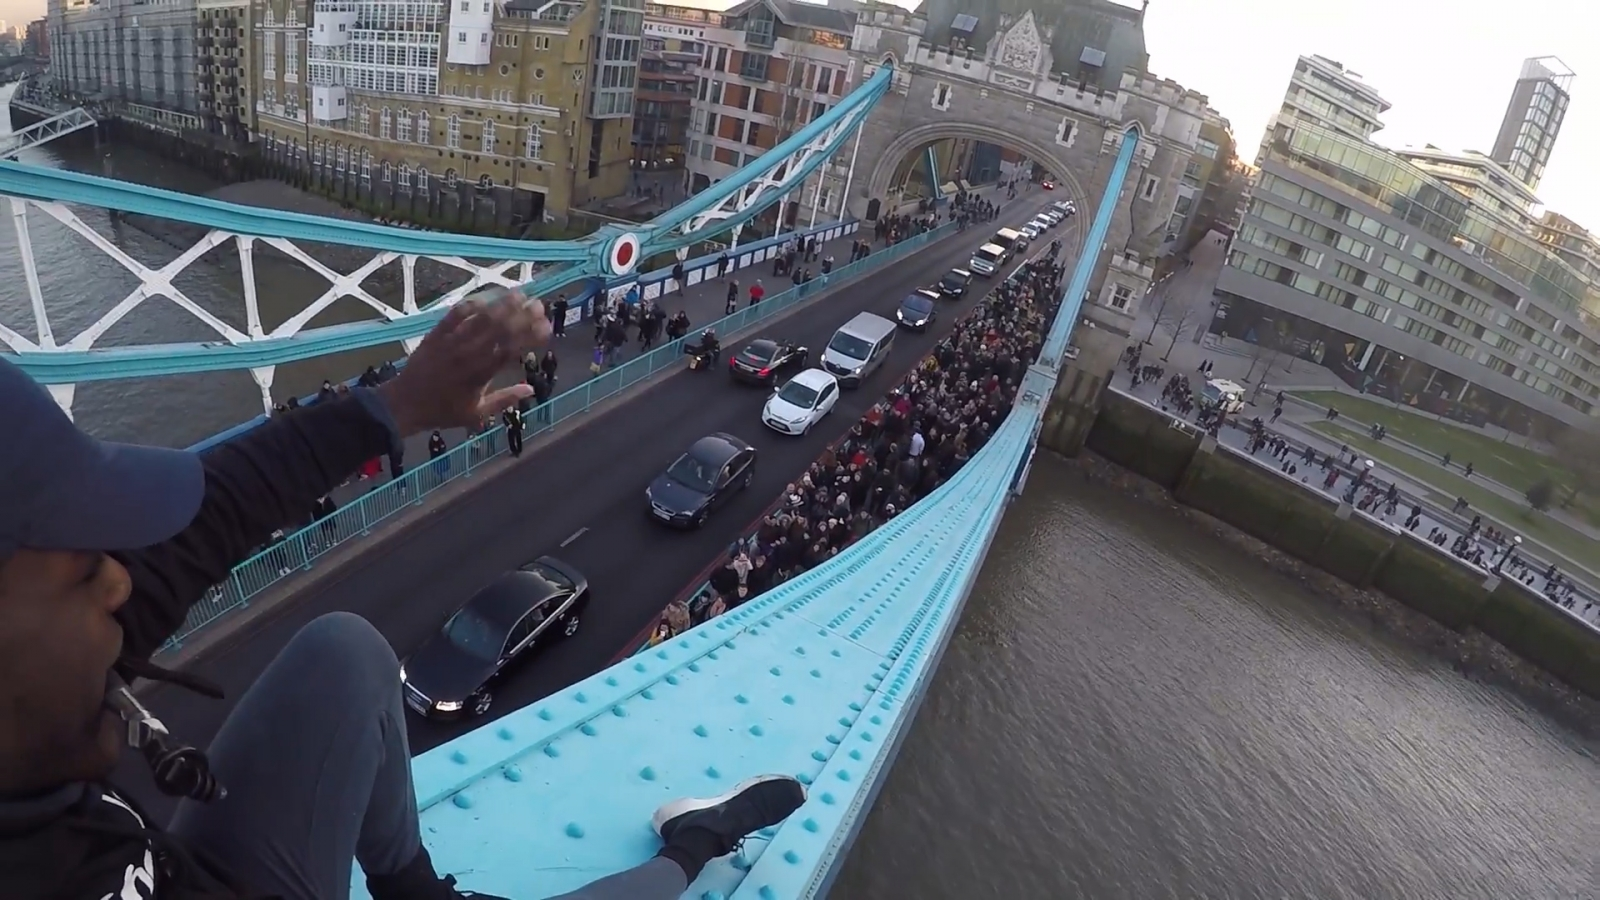 'Urban explorer' climbs Tower Bridge with no harness